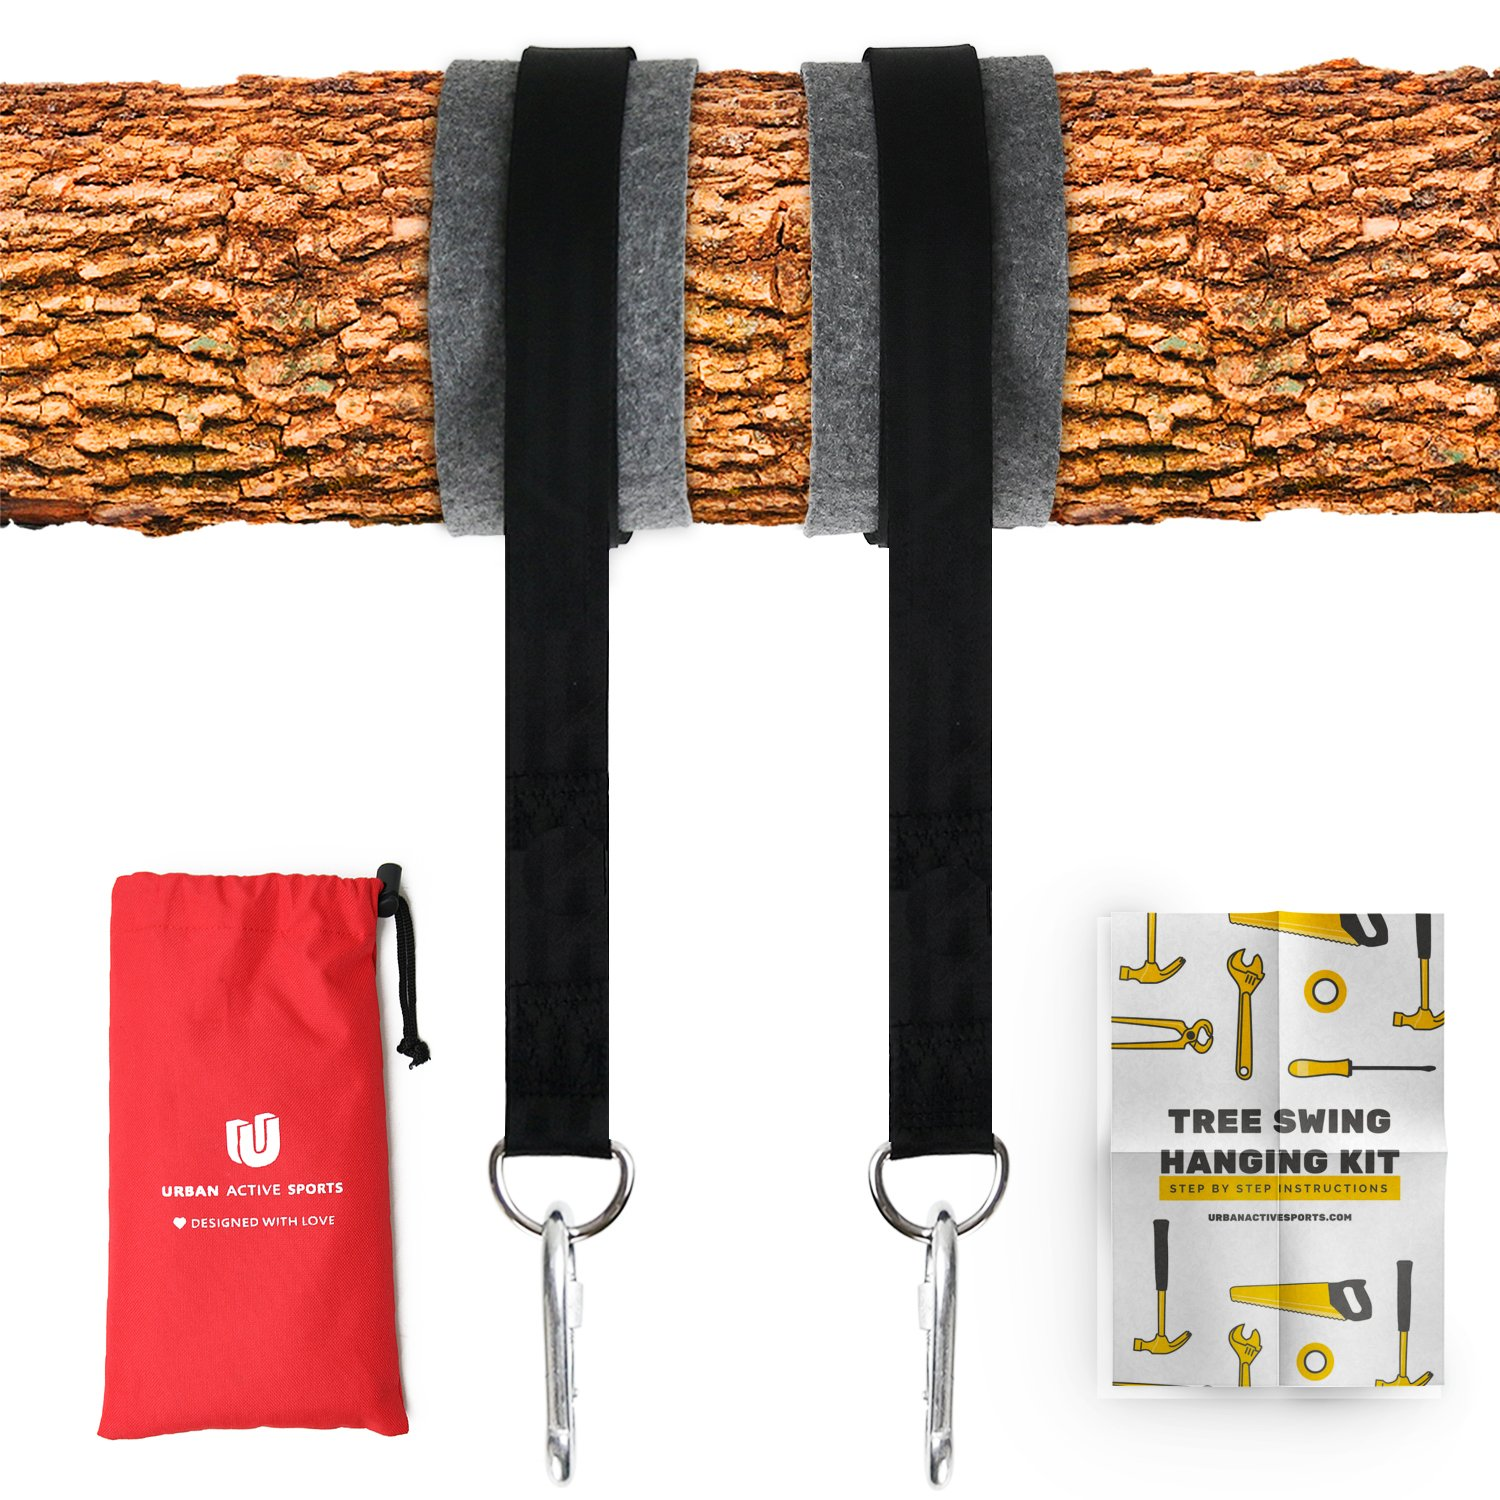 Tree Swing Hanging Kit (Set Of 2) Holds 2200 LBS Extra Long 10 ft Straps + 2 Tree Protectors + 2 Carabiners with Locking System & Video Instructions, for Swing Sets, Tree Swings, Hammock & Tire Swing by Urban Active Sports